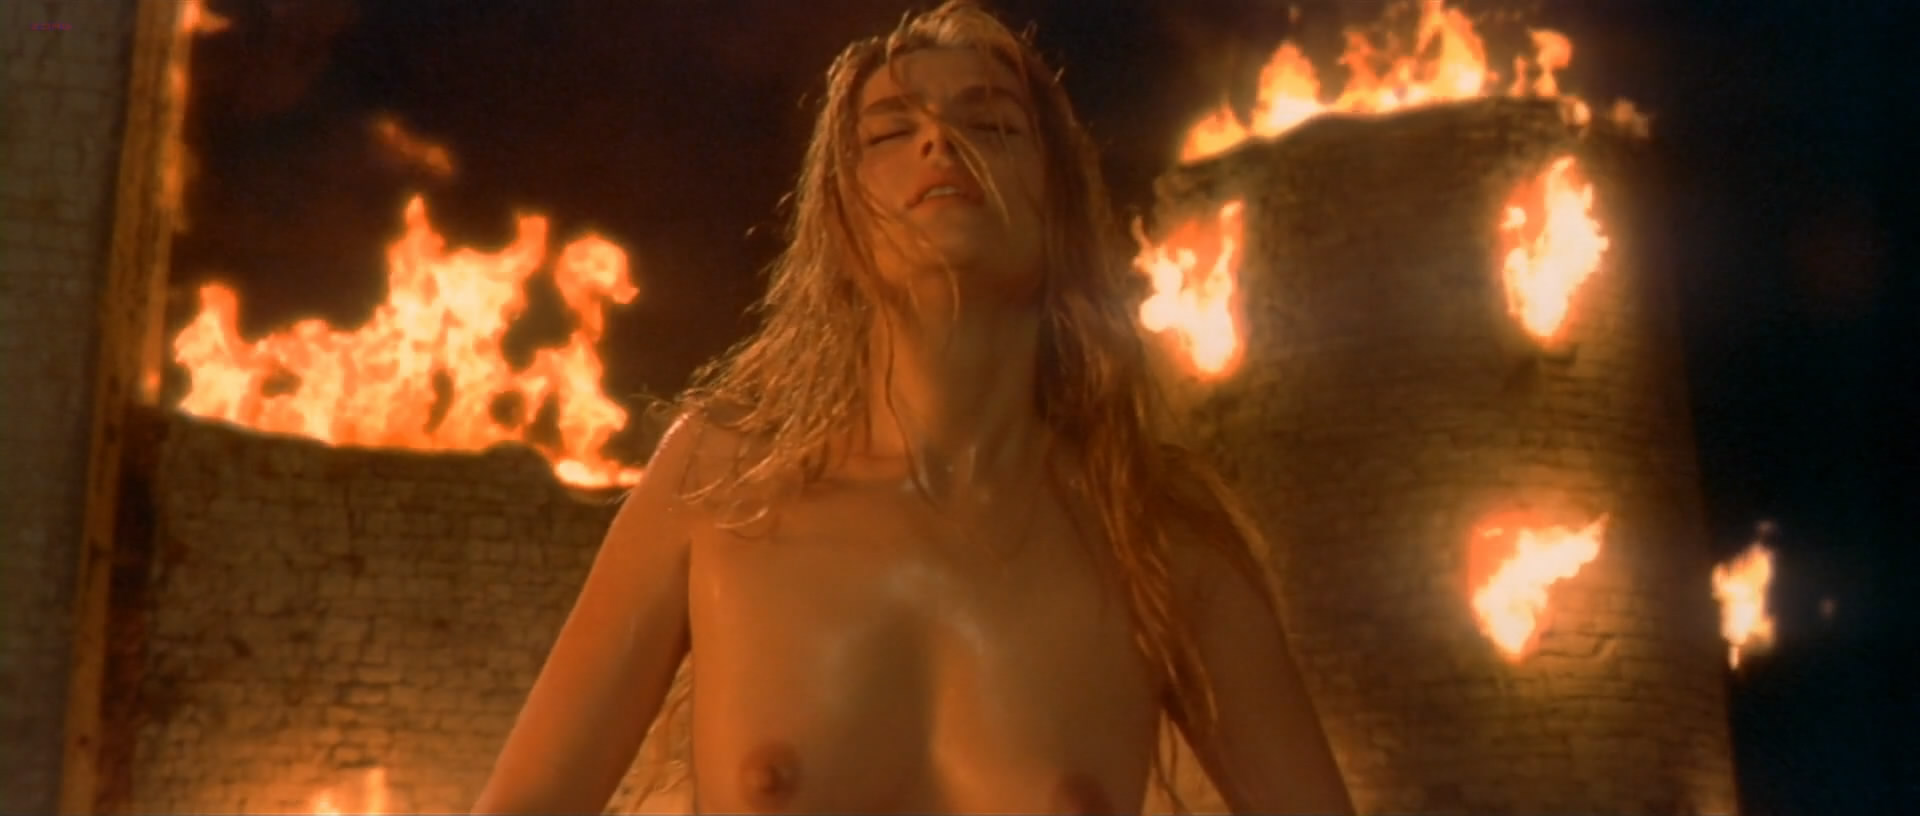 """Emmanuelle Seigner nude topless in """"The Ninth Gate"""" (1999) hd1080p"""